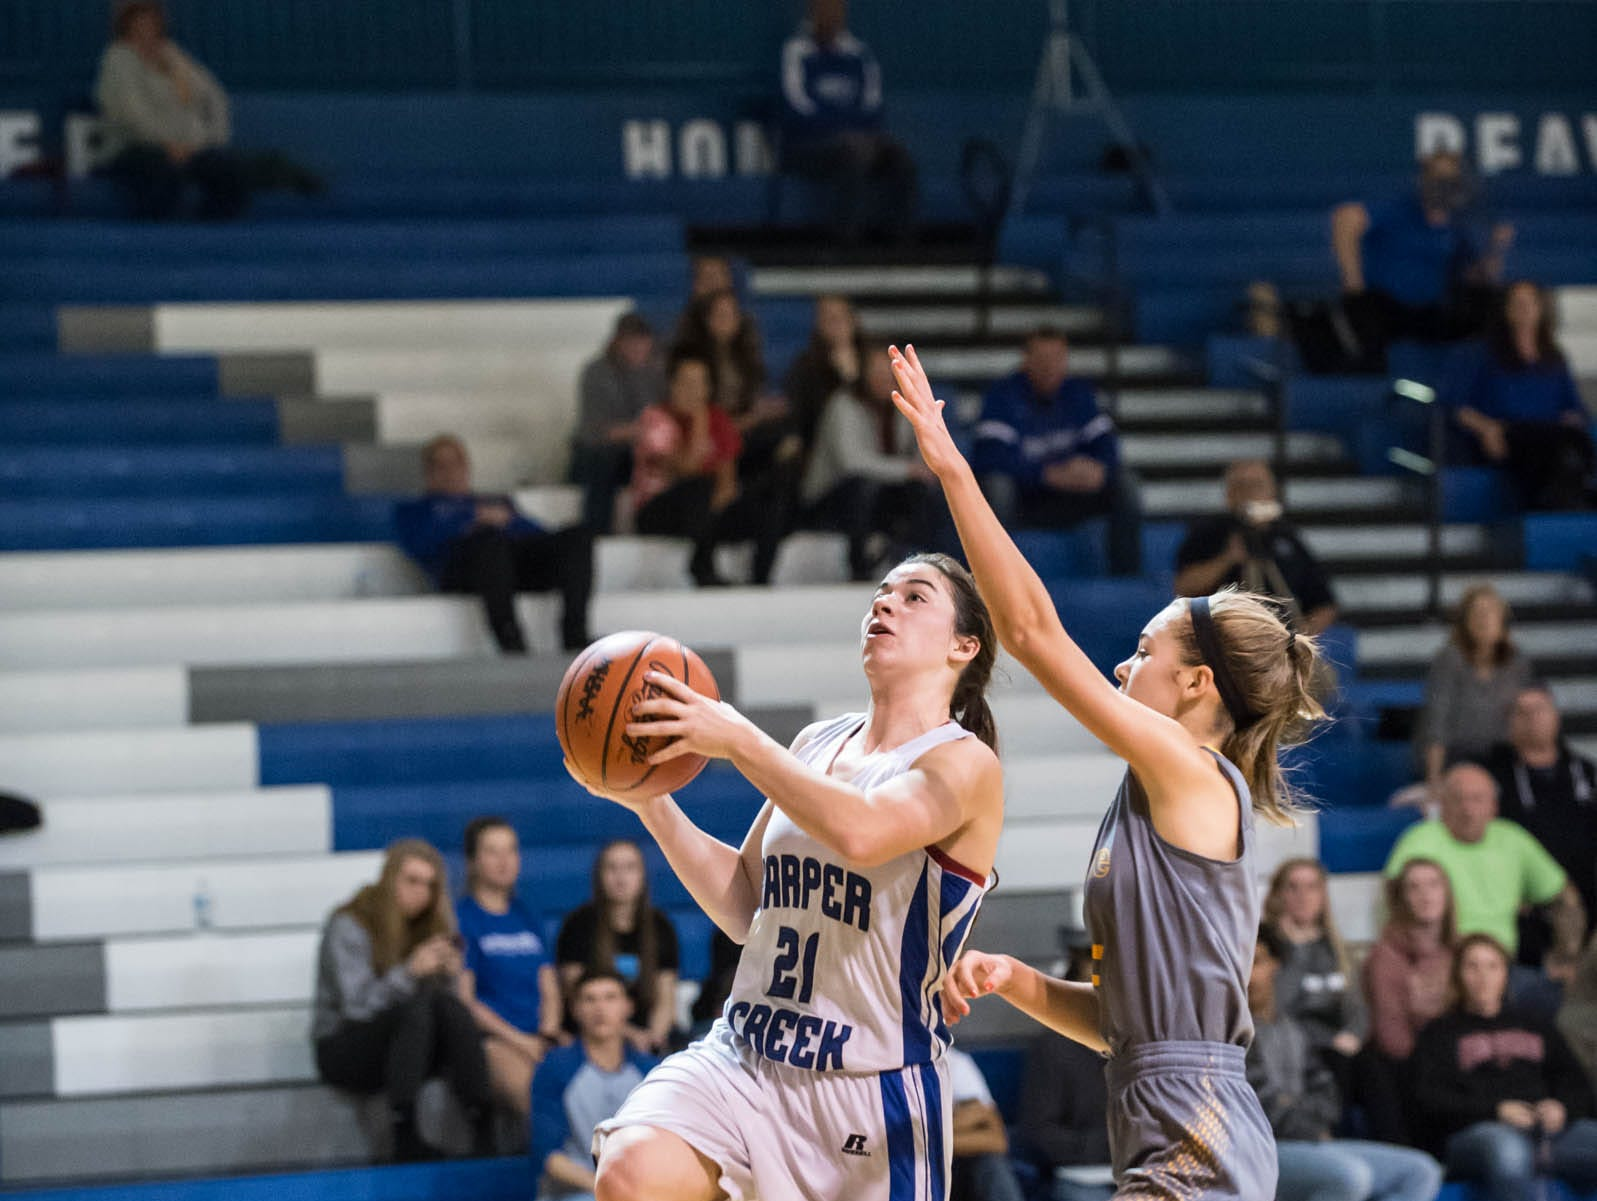 Harper Creek's Jacey Bowers goes for the layup during Tuesday's game against St Joseph.